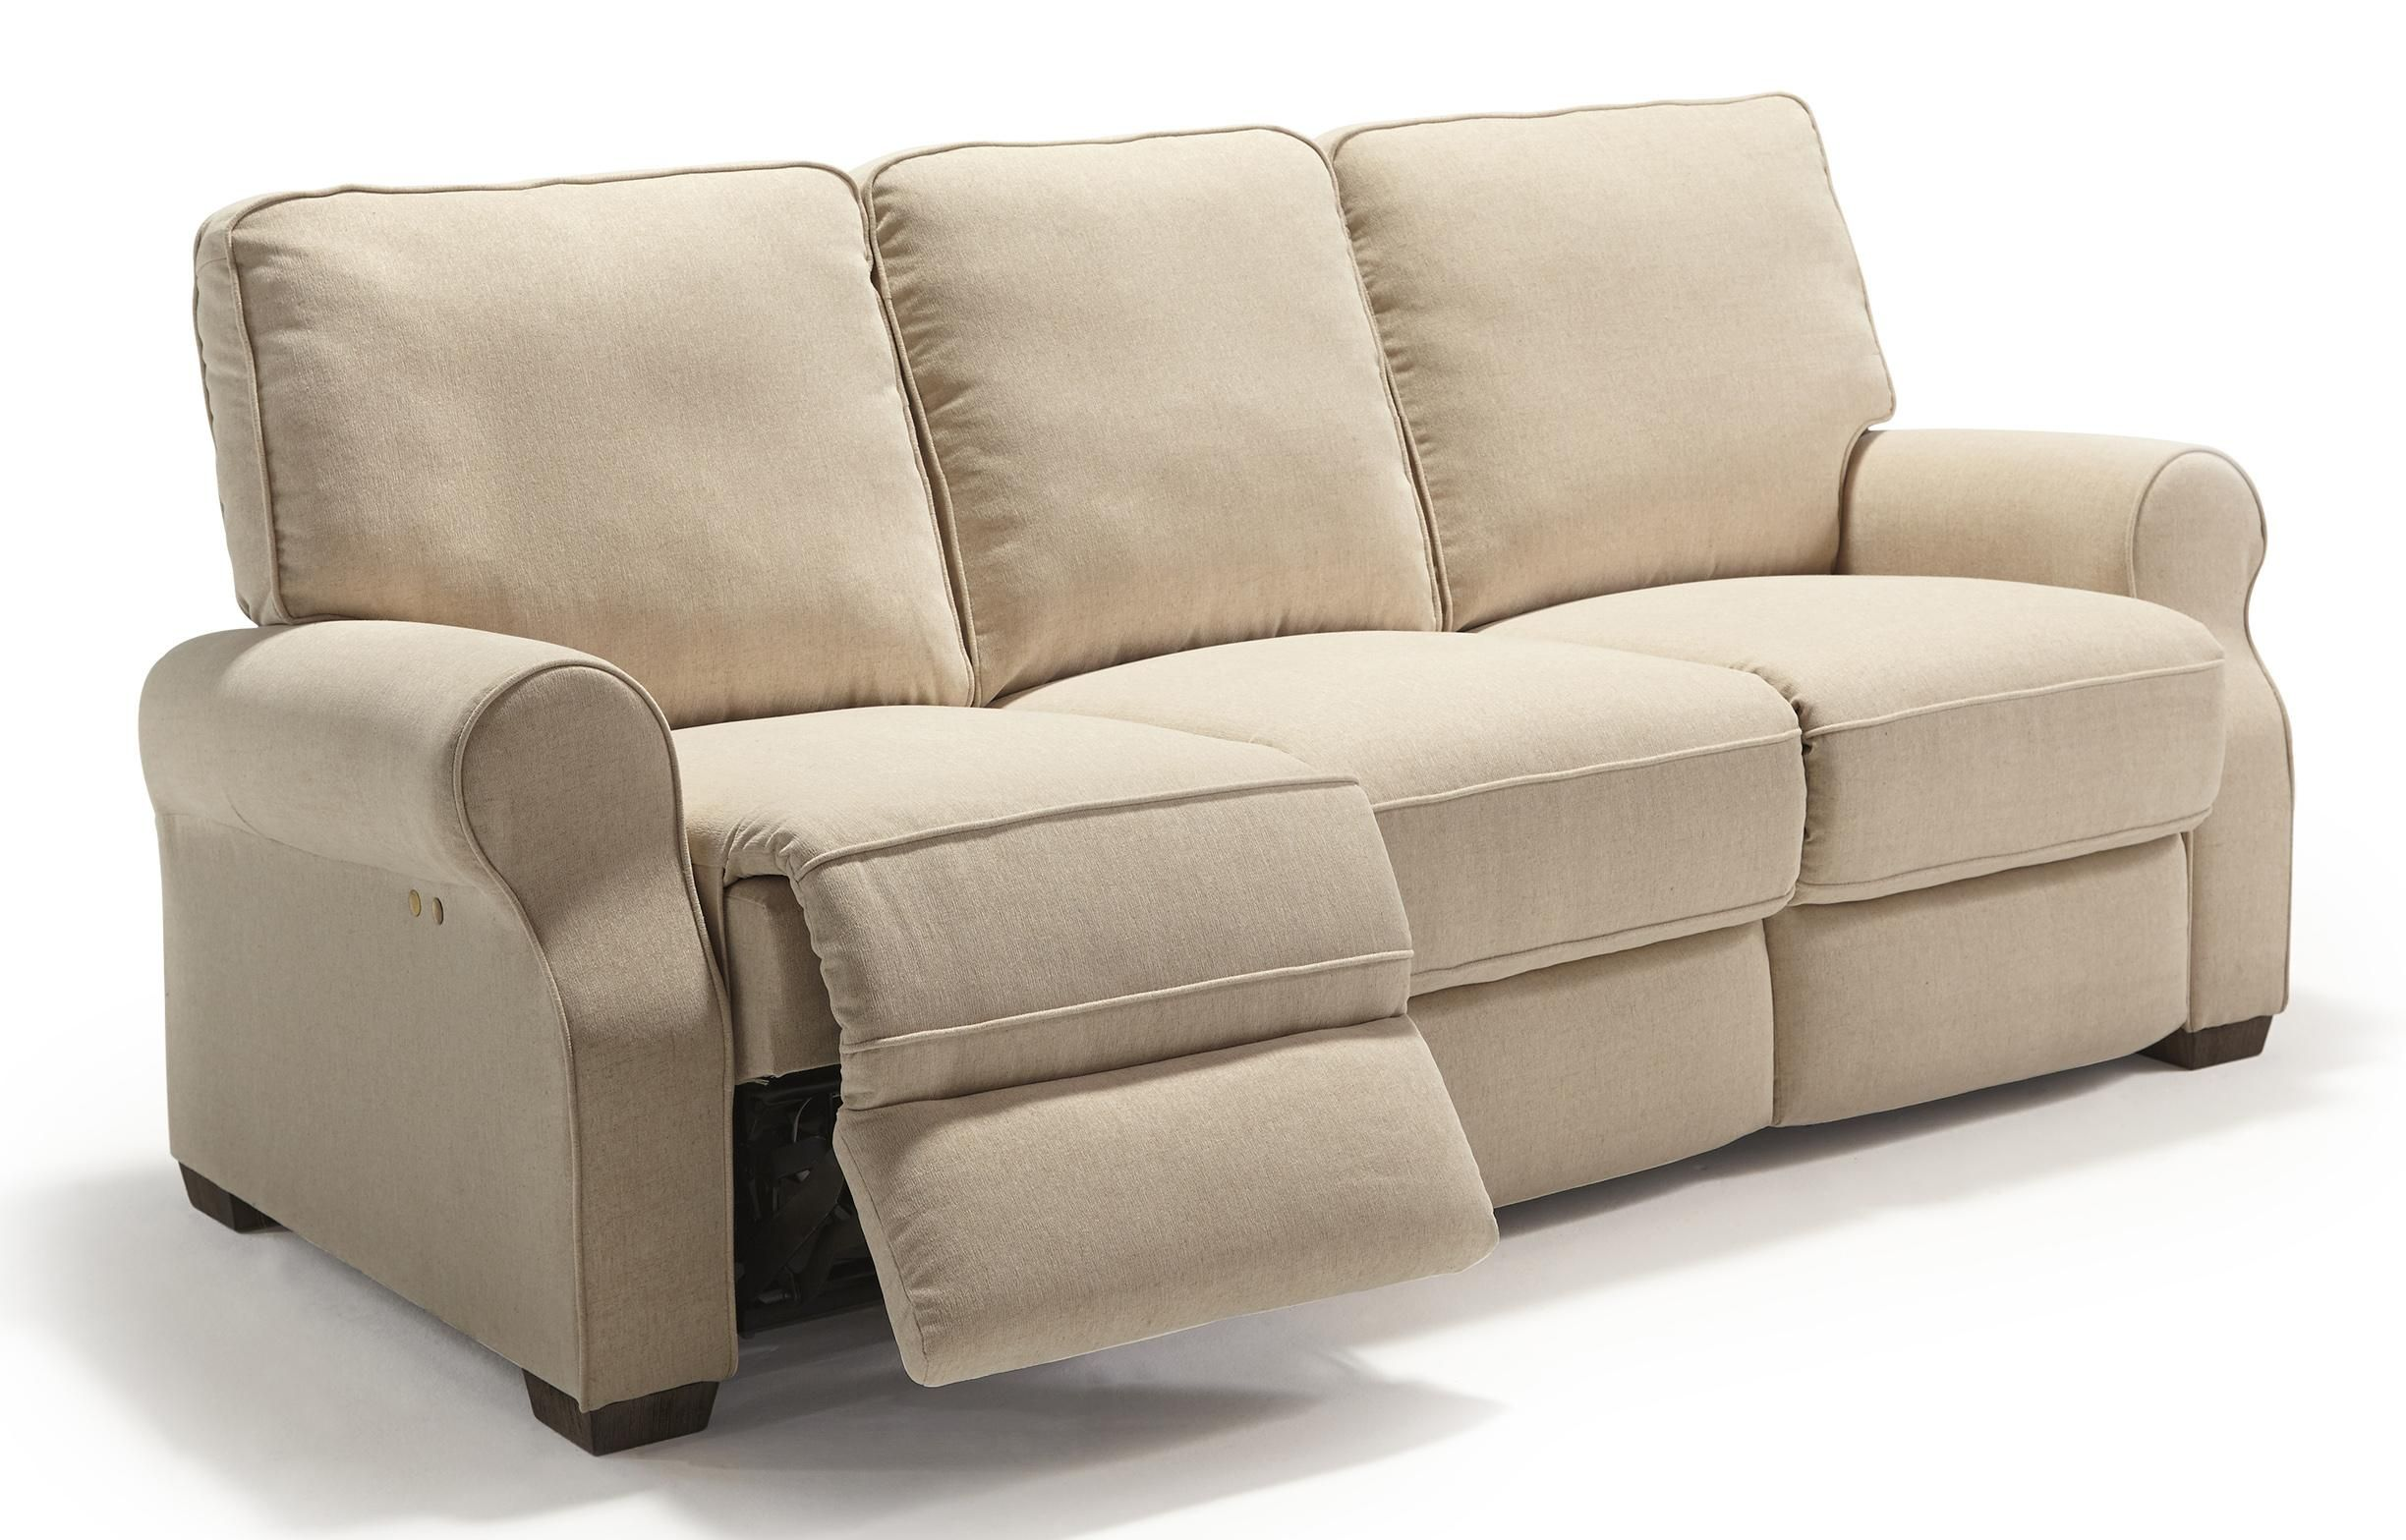 Another reclining sofa that does not look like and overstuffed